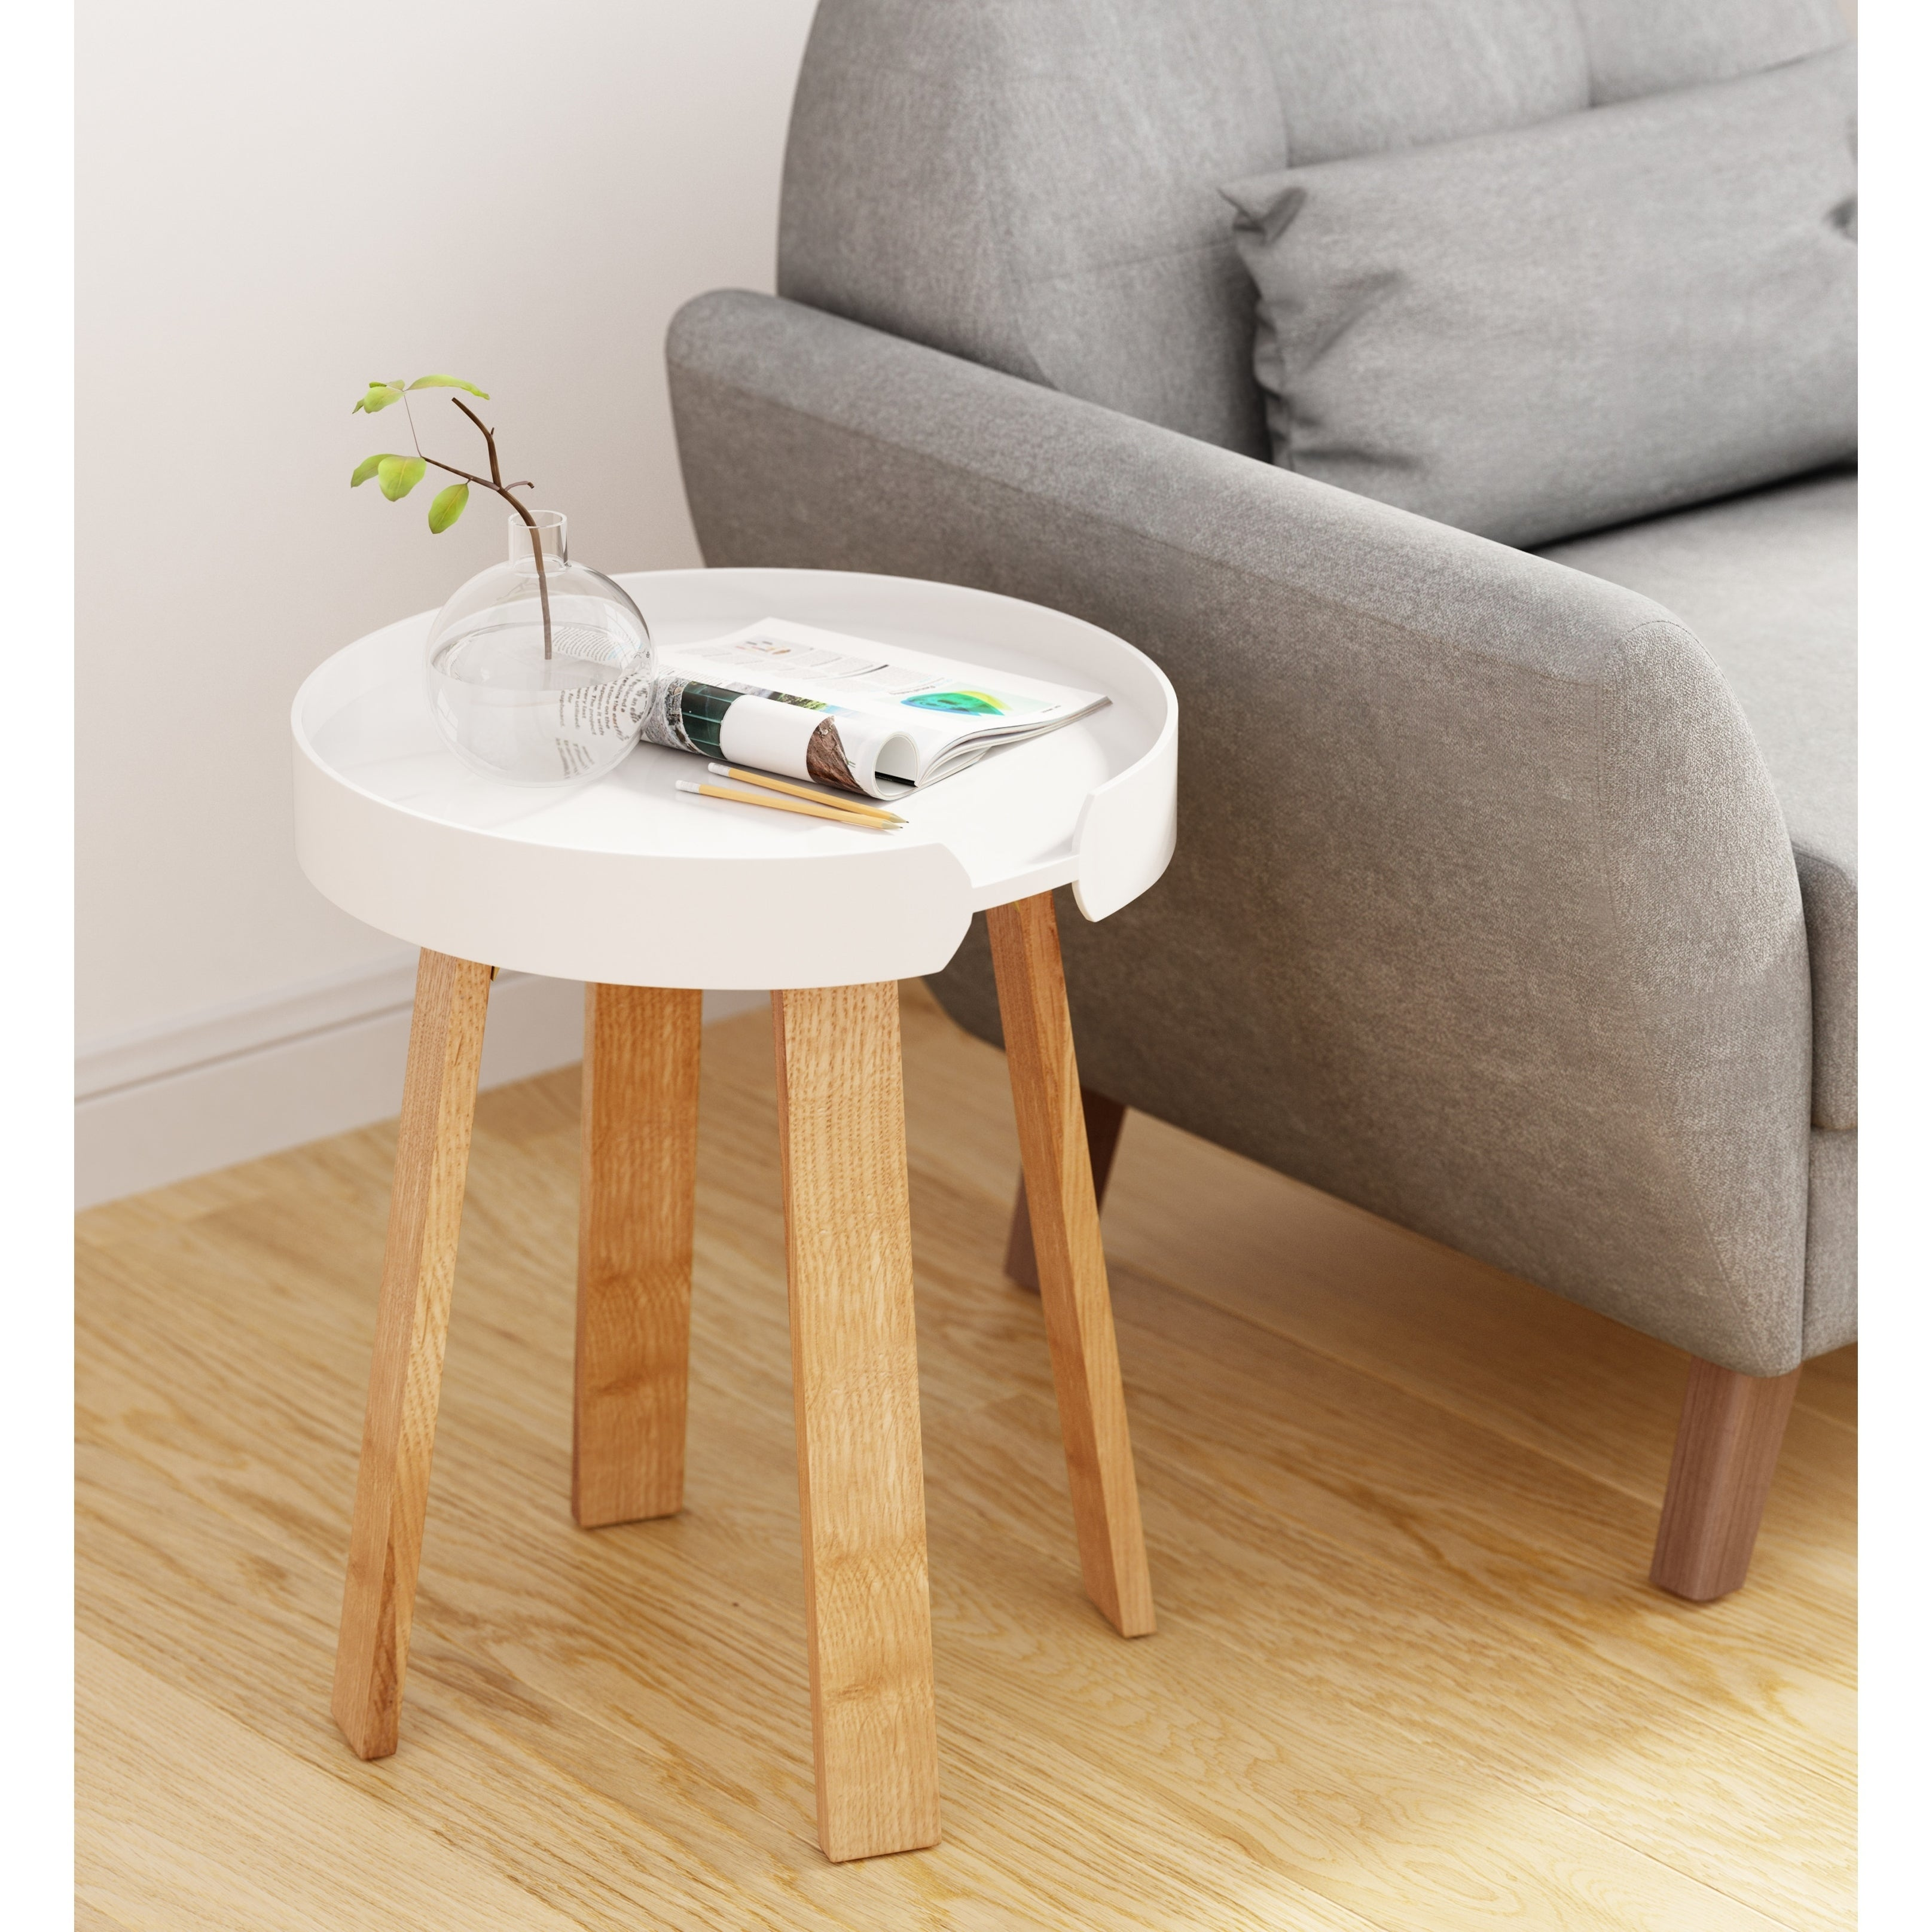 Universal Expert Remus Round Side Table, Modern Oak and White